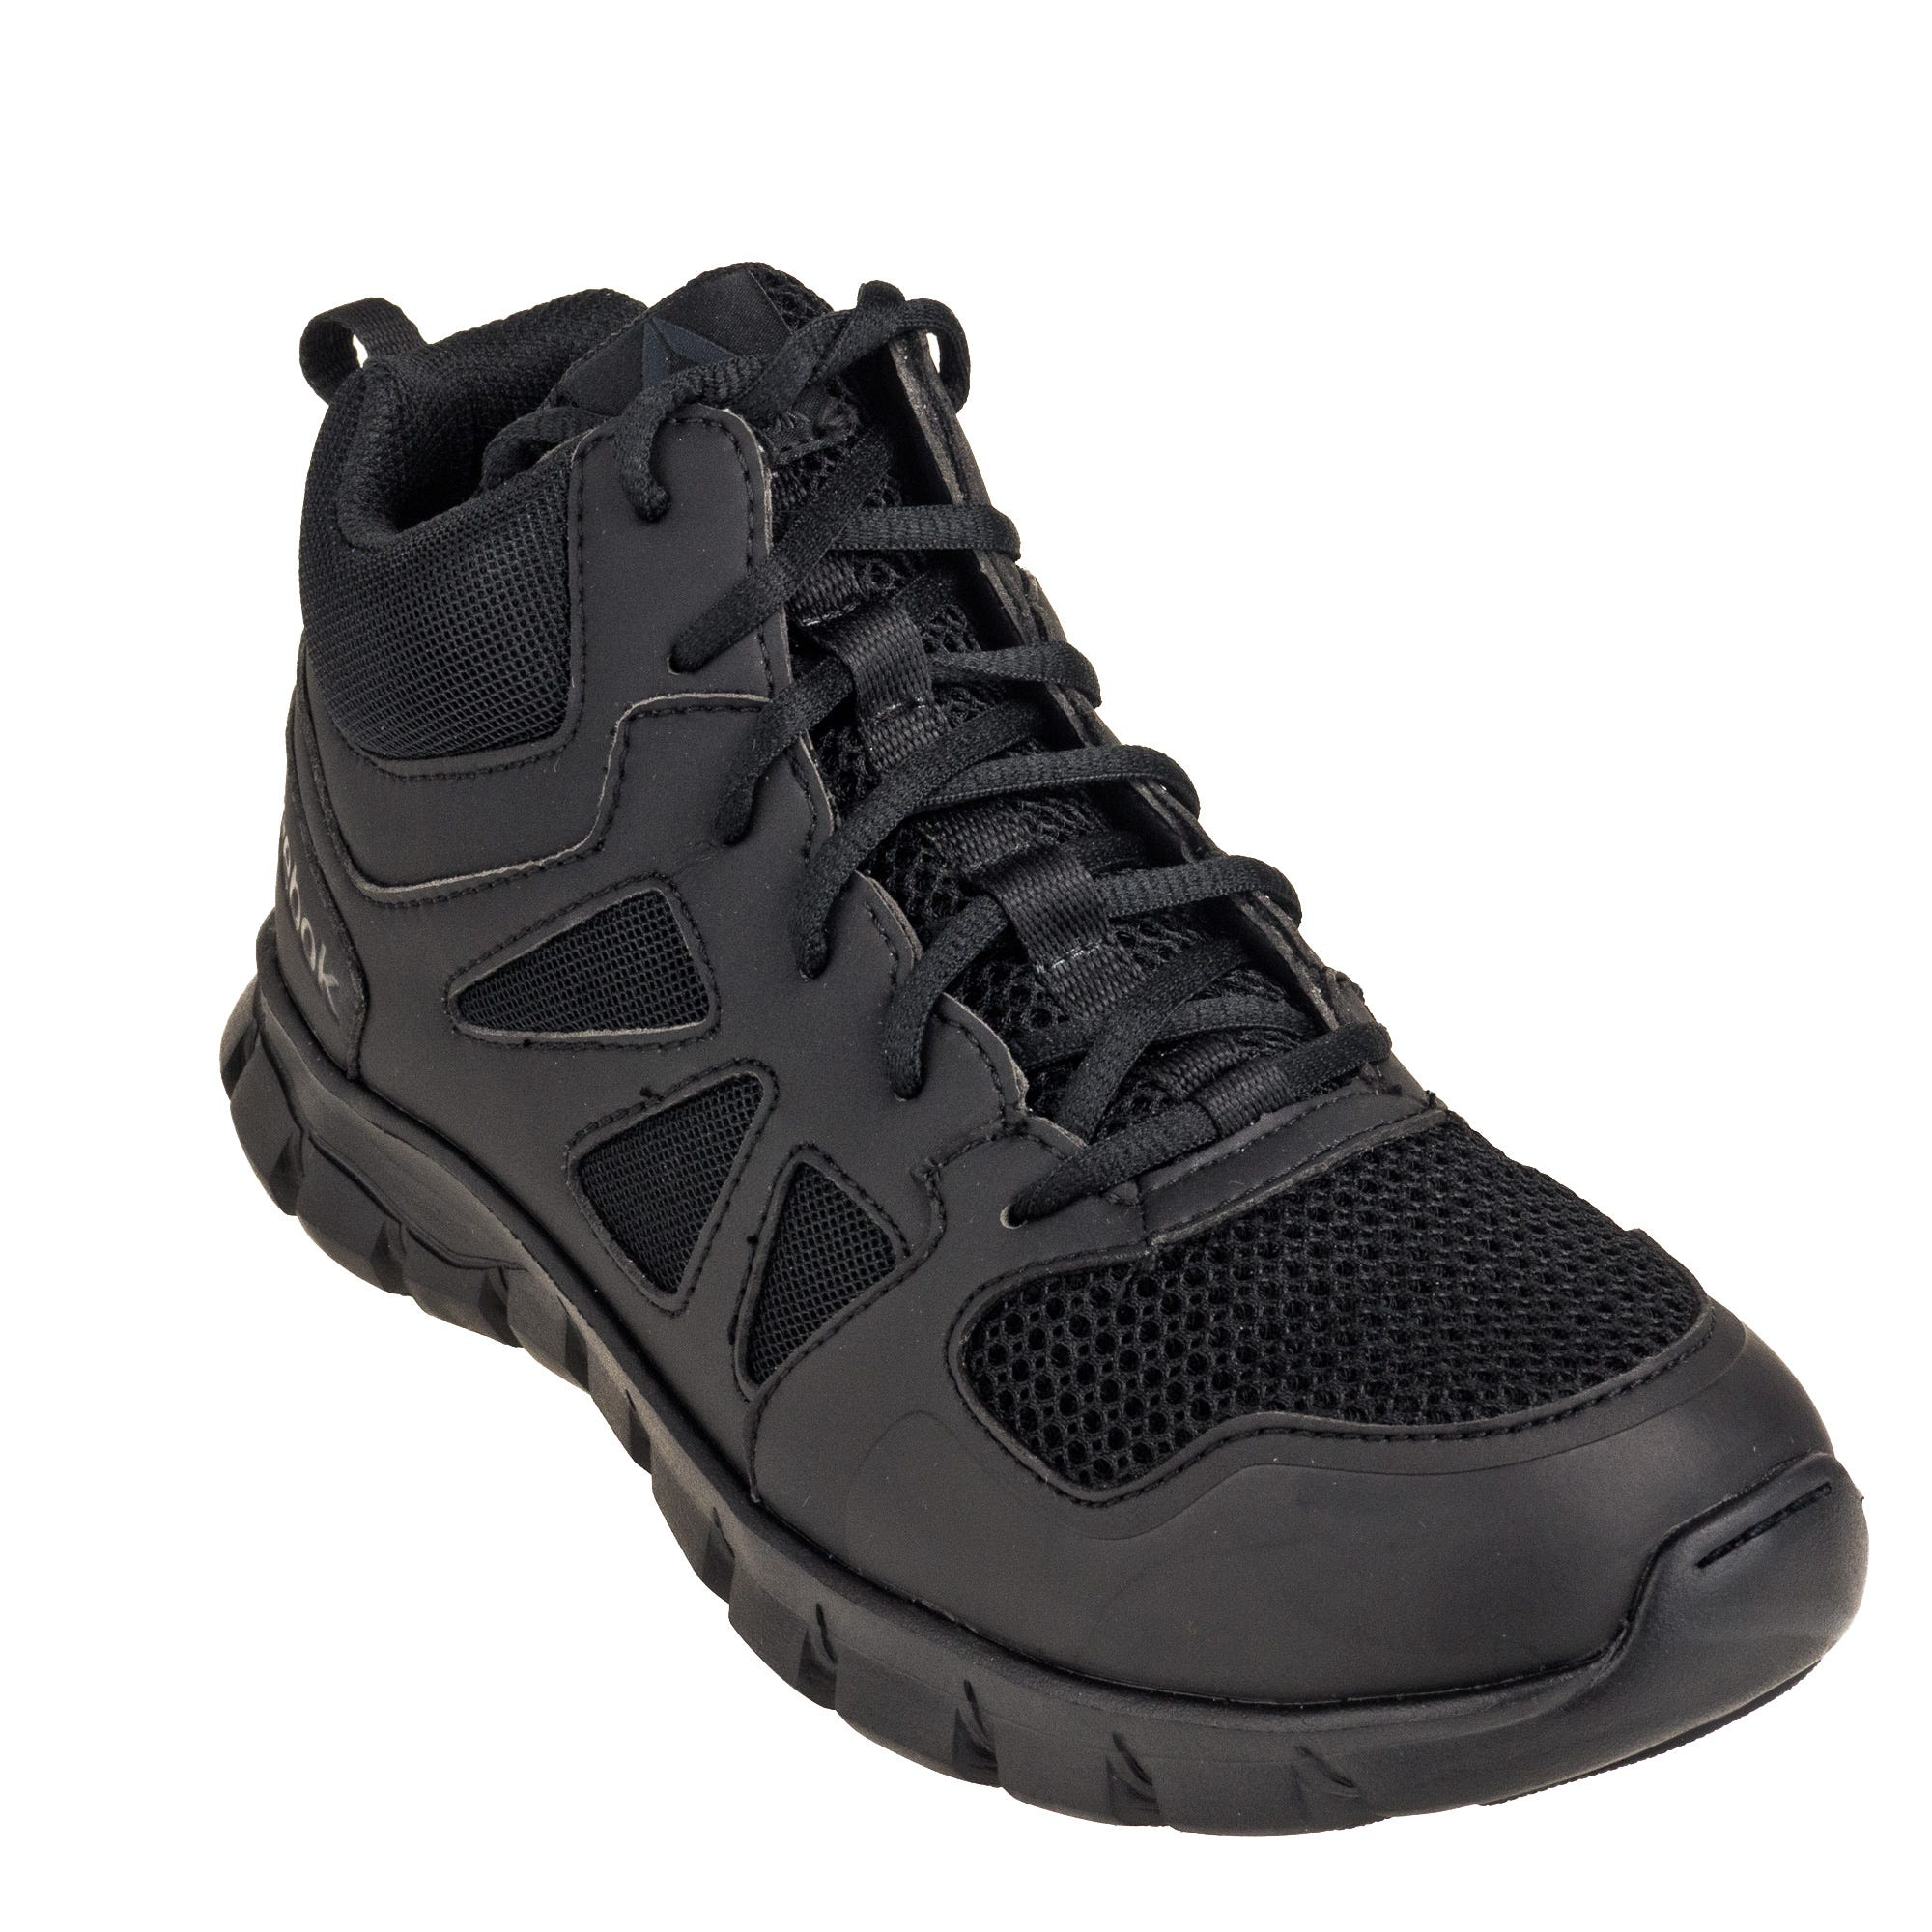 Reebok Women's Black RB805 EH Sublite Cushion Mid Tactical Boots